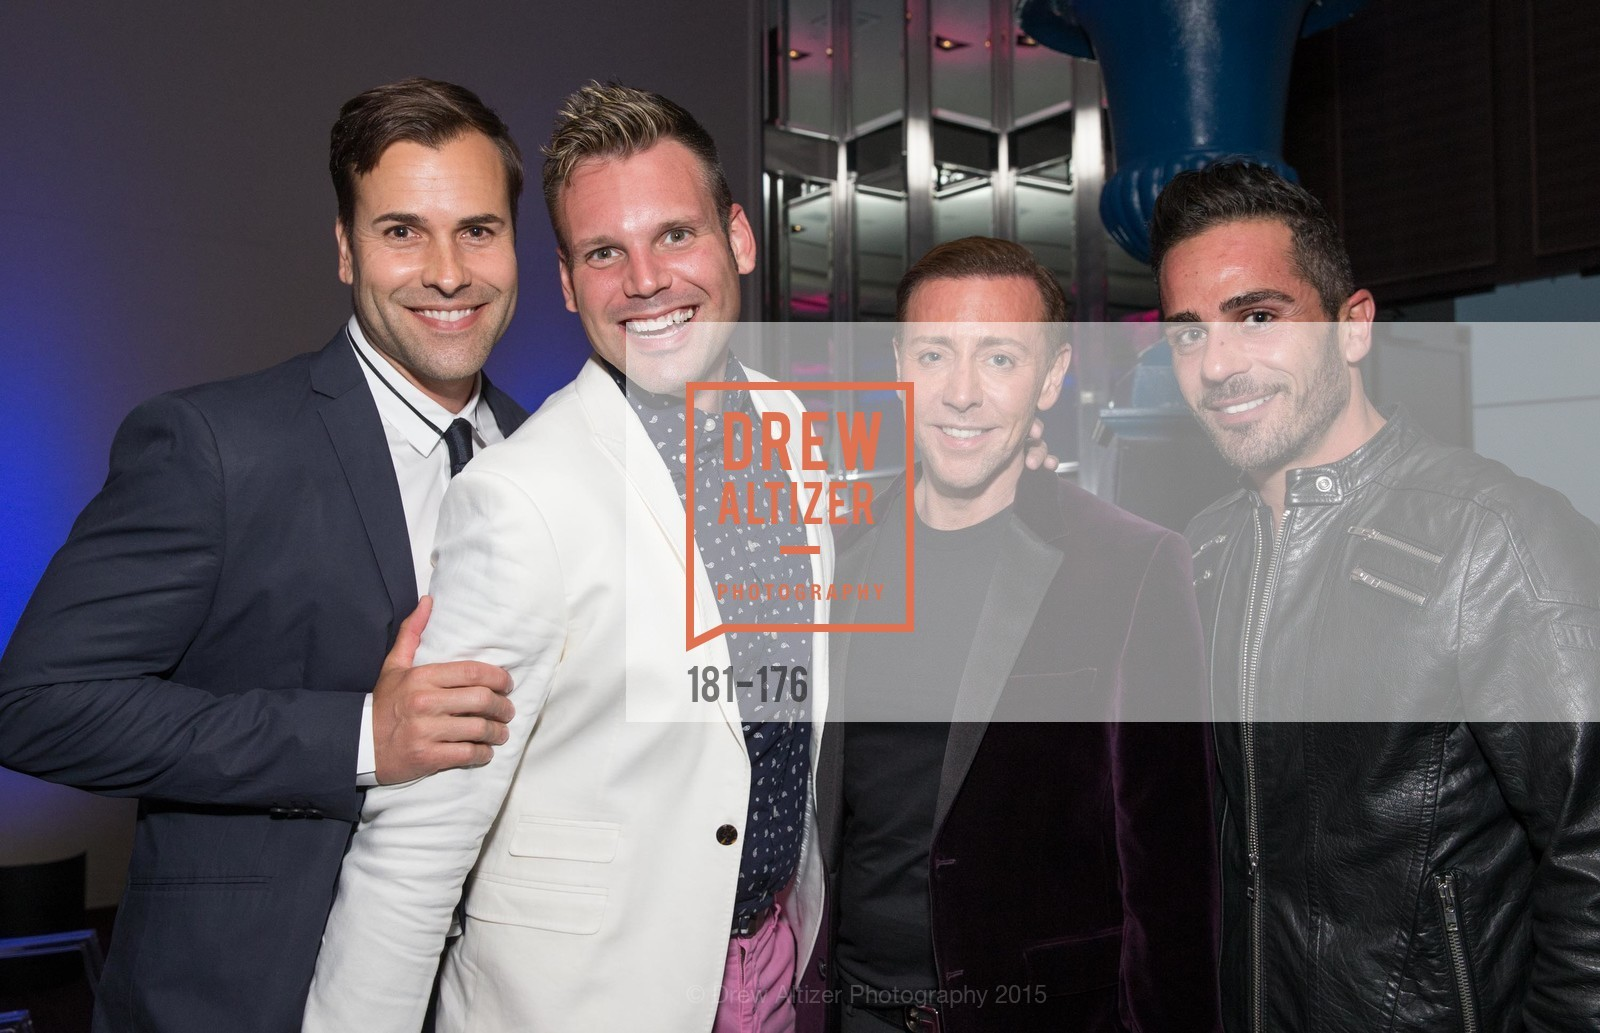 Patrick Devin, Josh Morgan, Mark Rhoades, Michel Khairallah, VIP Pride Celebration 2015, St. Regis, June 18th, 2015,Drew Altizer, Drew Altizer Photography, full-service agency, private events, San Francisco photographer, photographer california